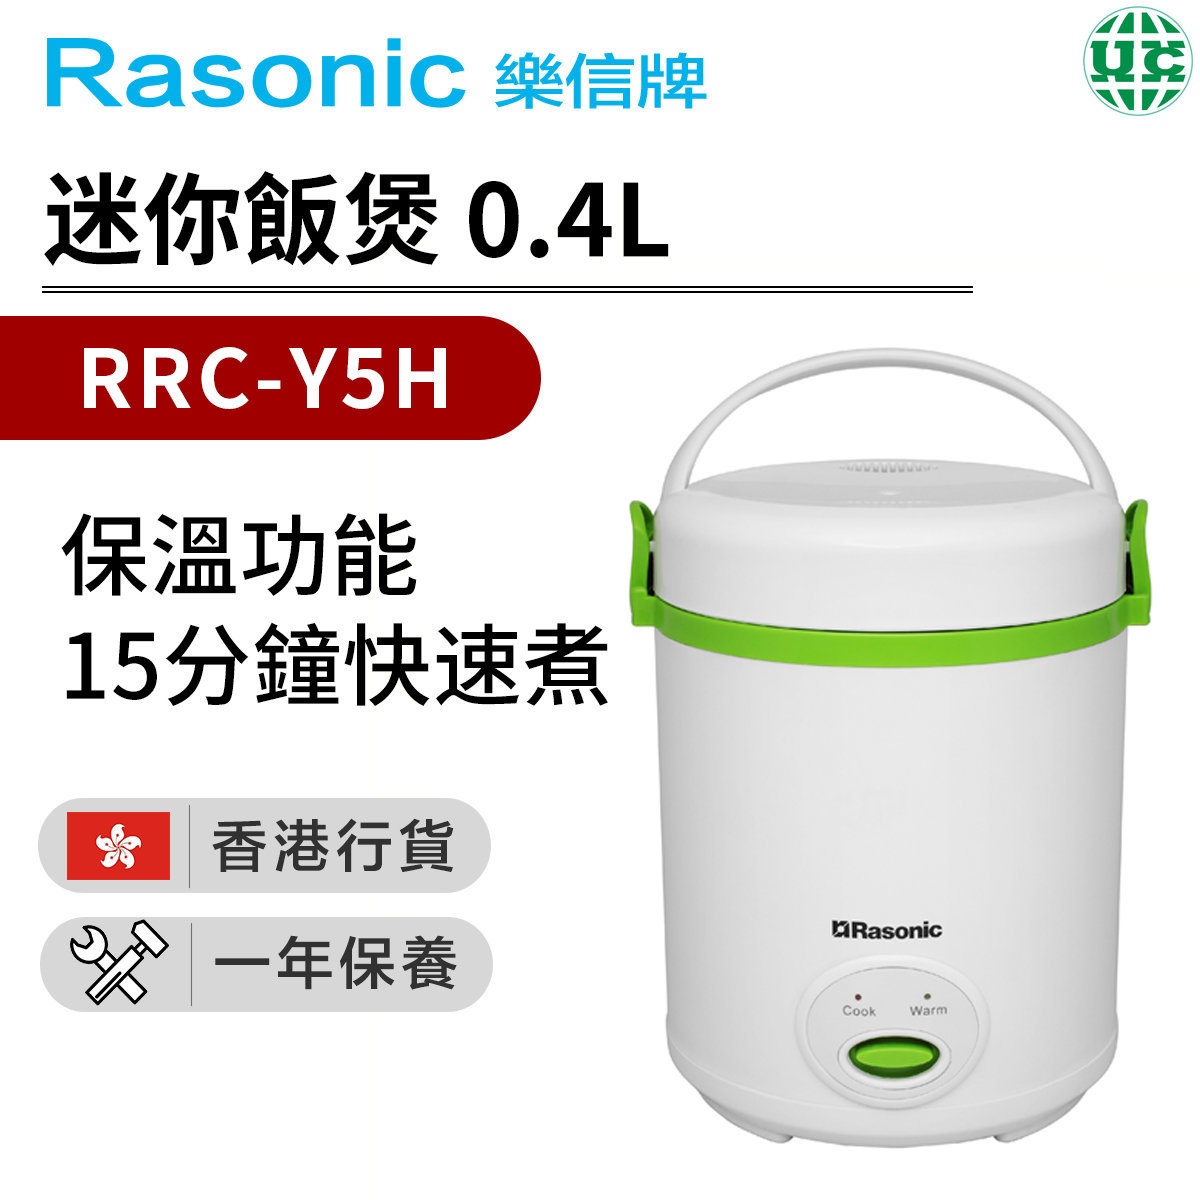 RRC-Y5H Mini Rice Cooker 0.4L (Hong Kong licensed)